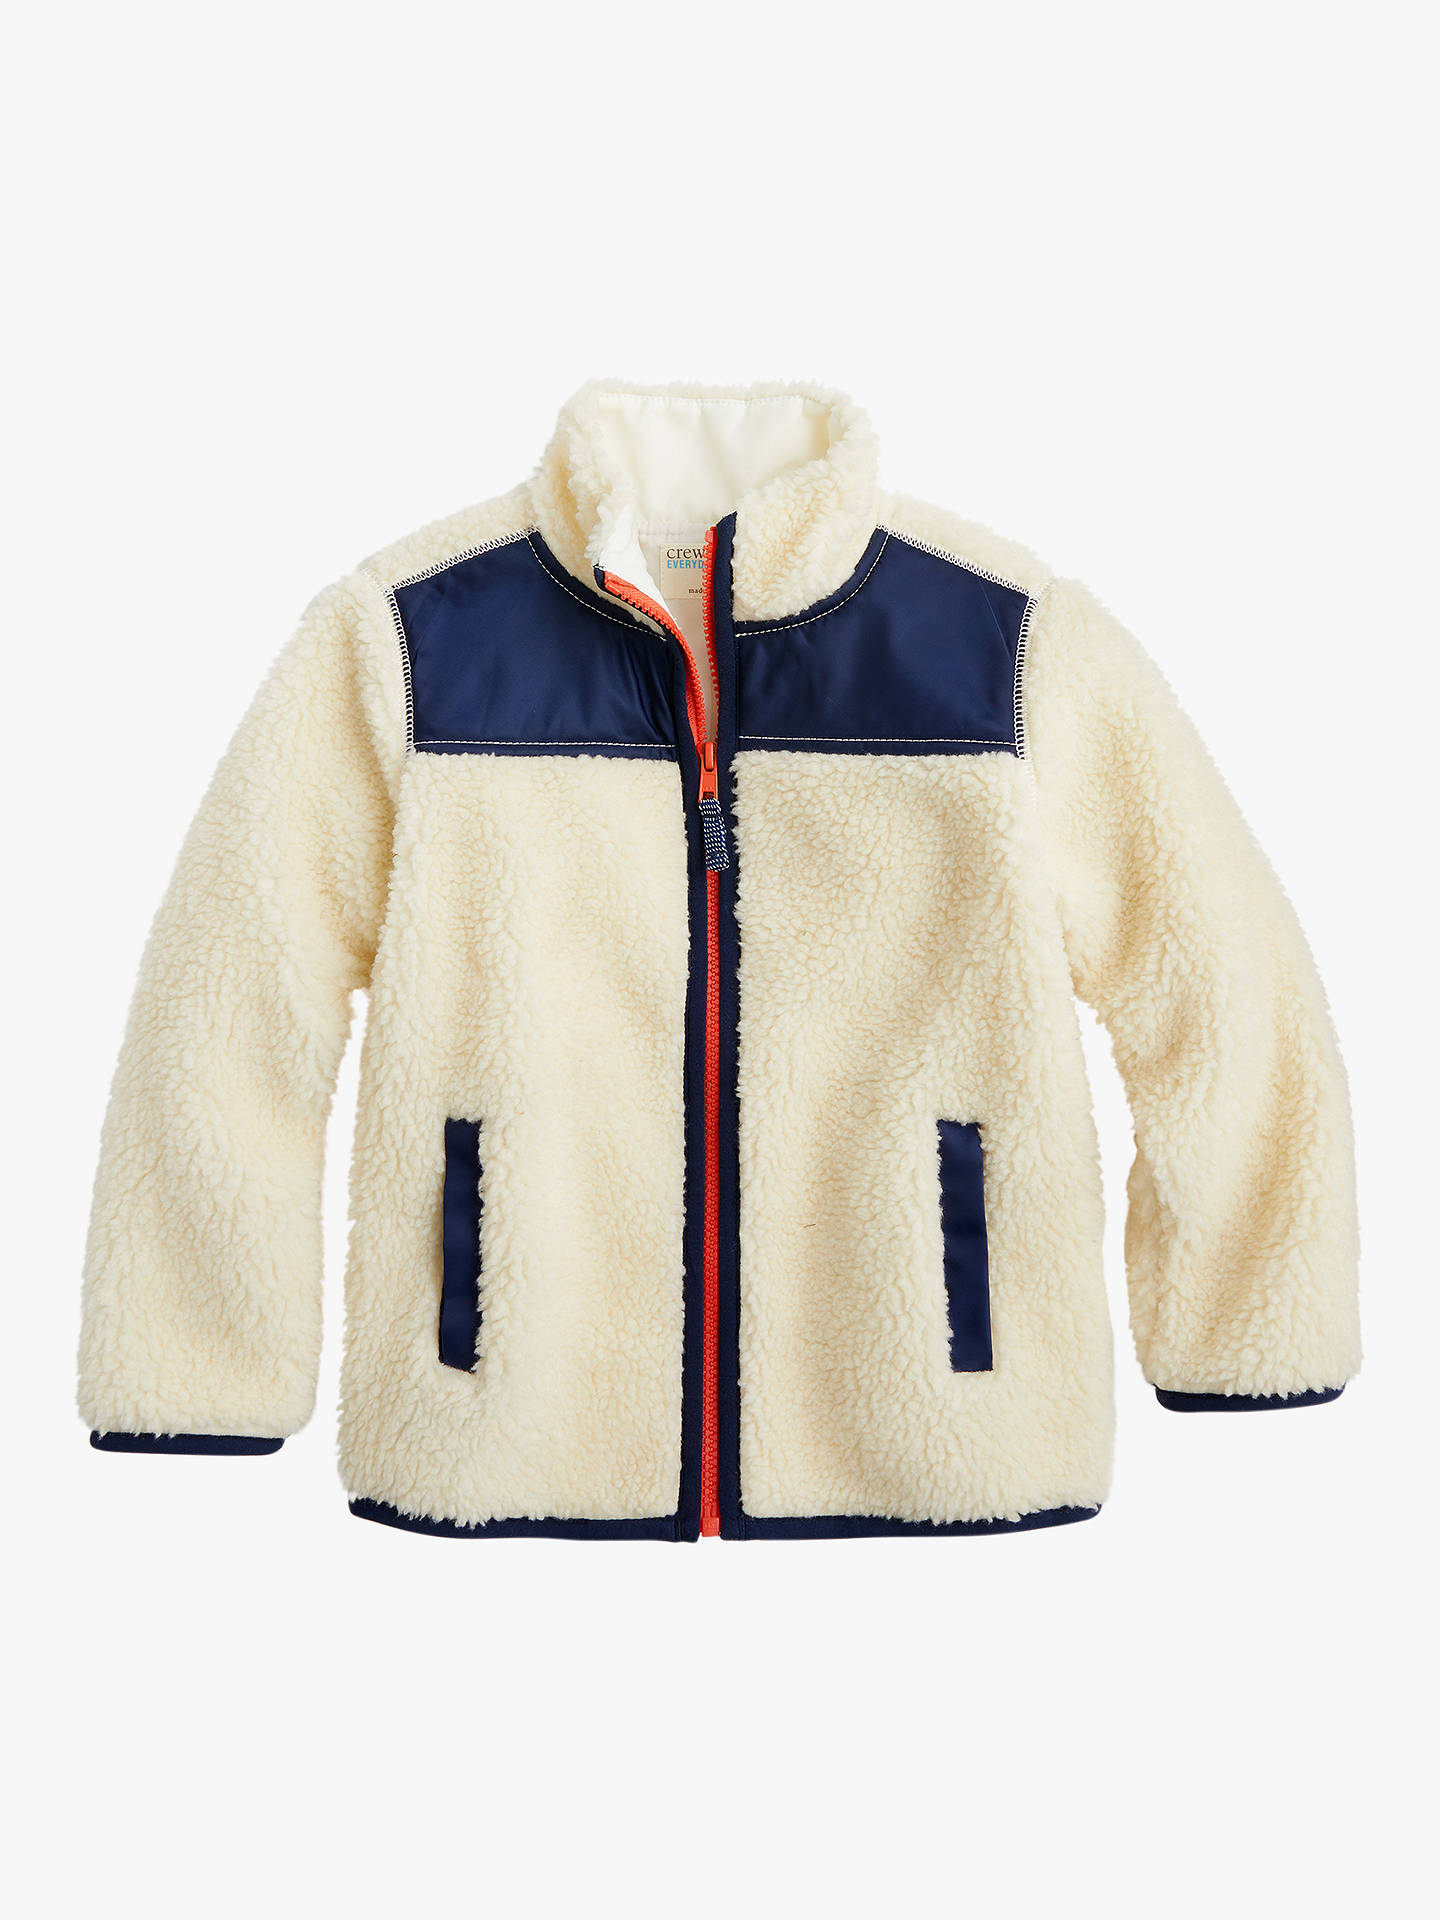 19258816a Buy crewcuts by J.Crew Boy's Colour Block Sherpa Jacket, White, 10 years